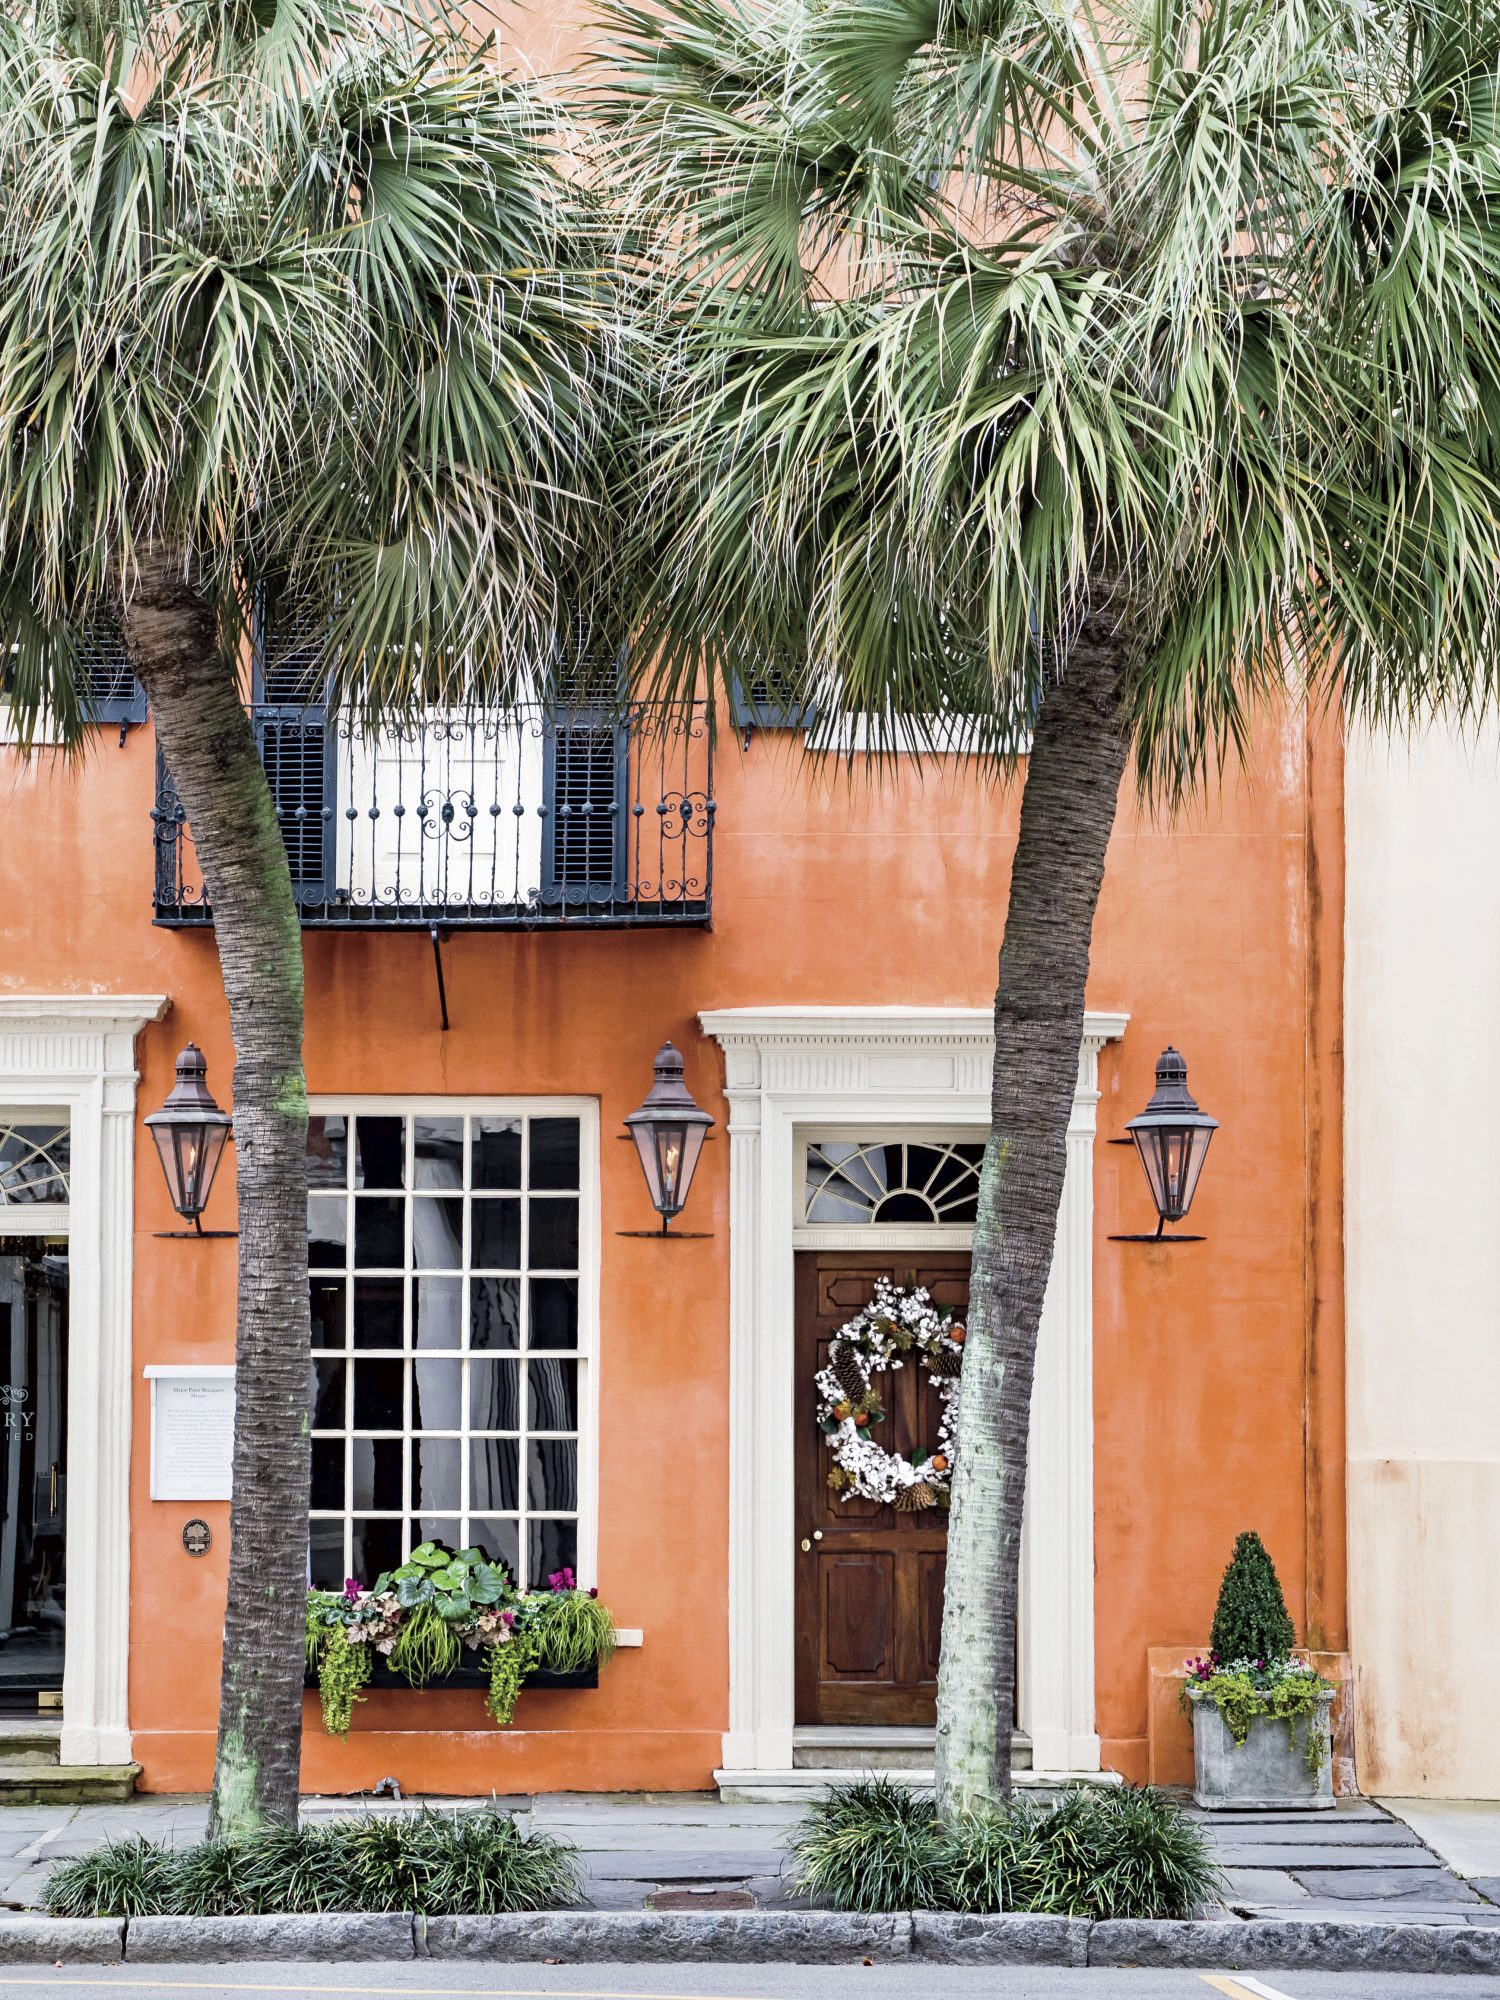 5. Hampton Park Terrace (Charleston, South Carolina)